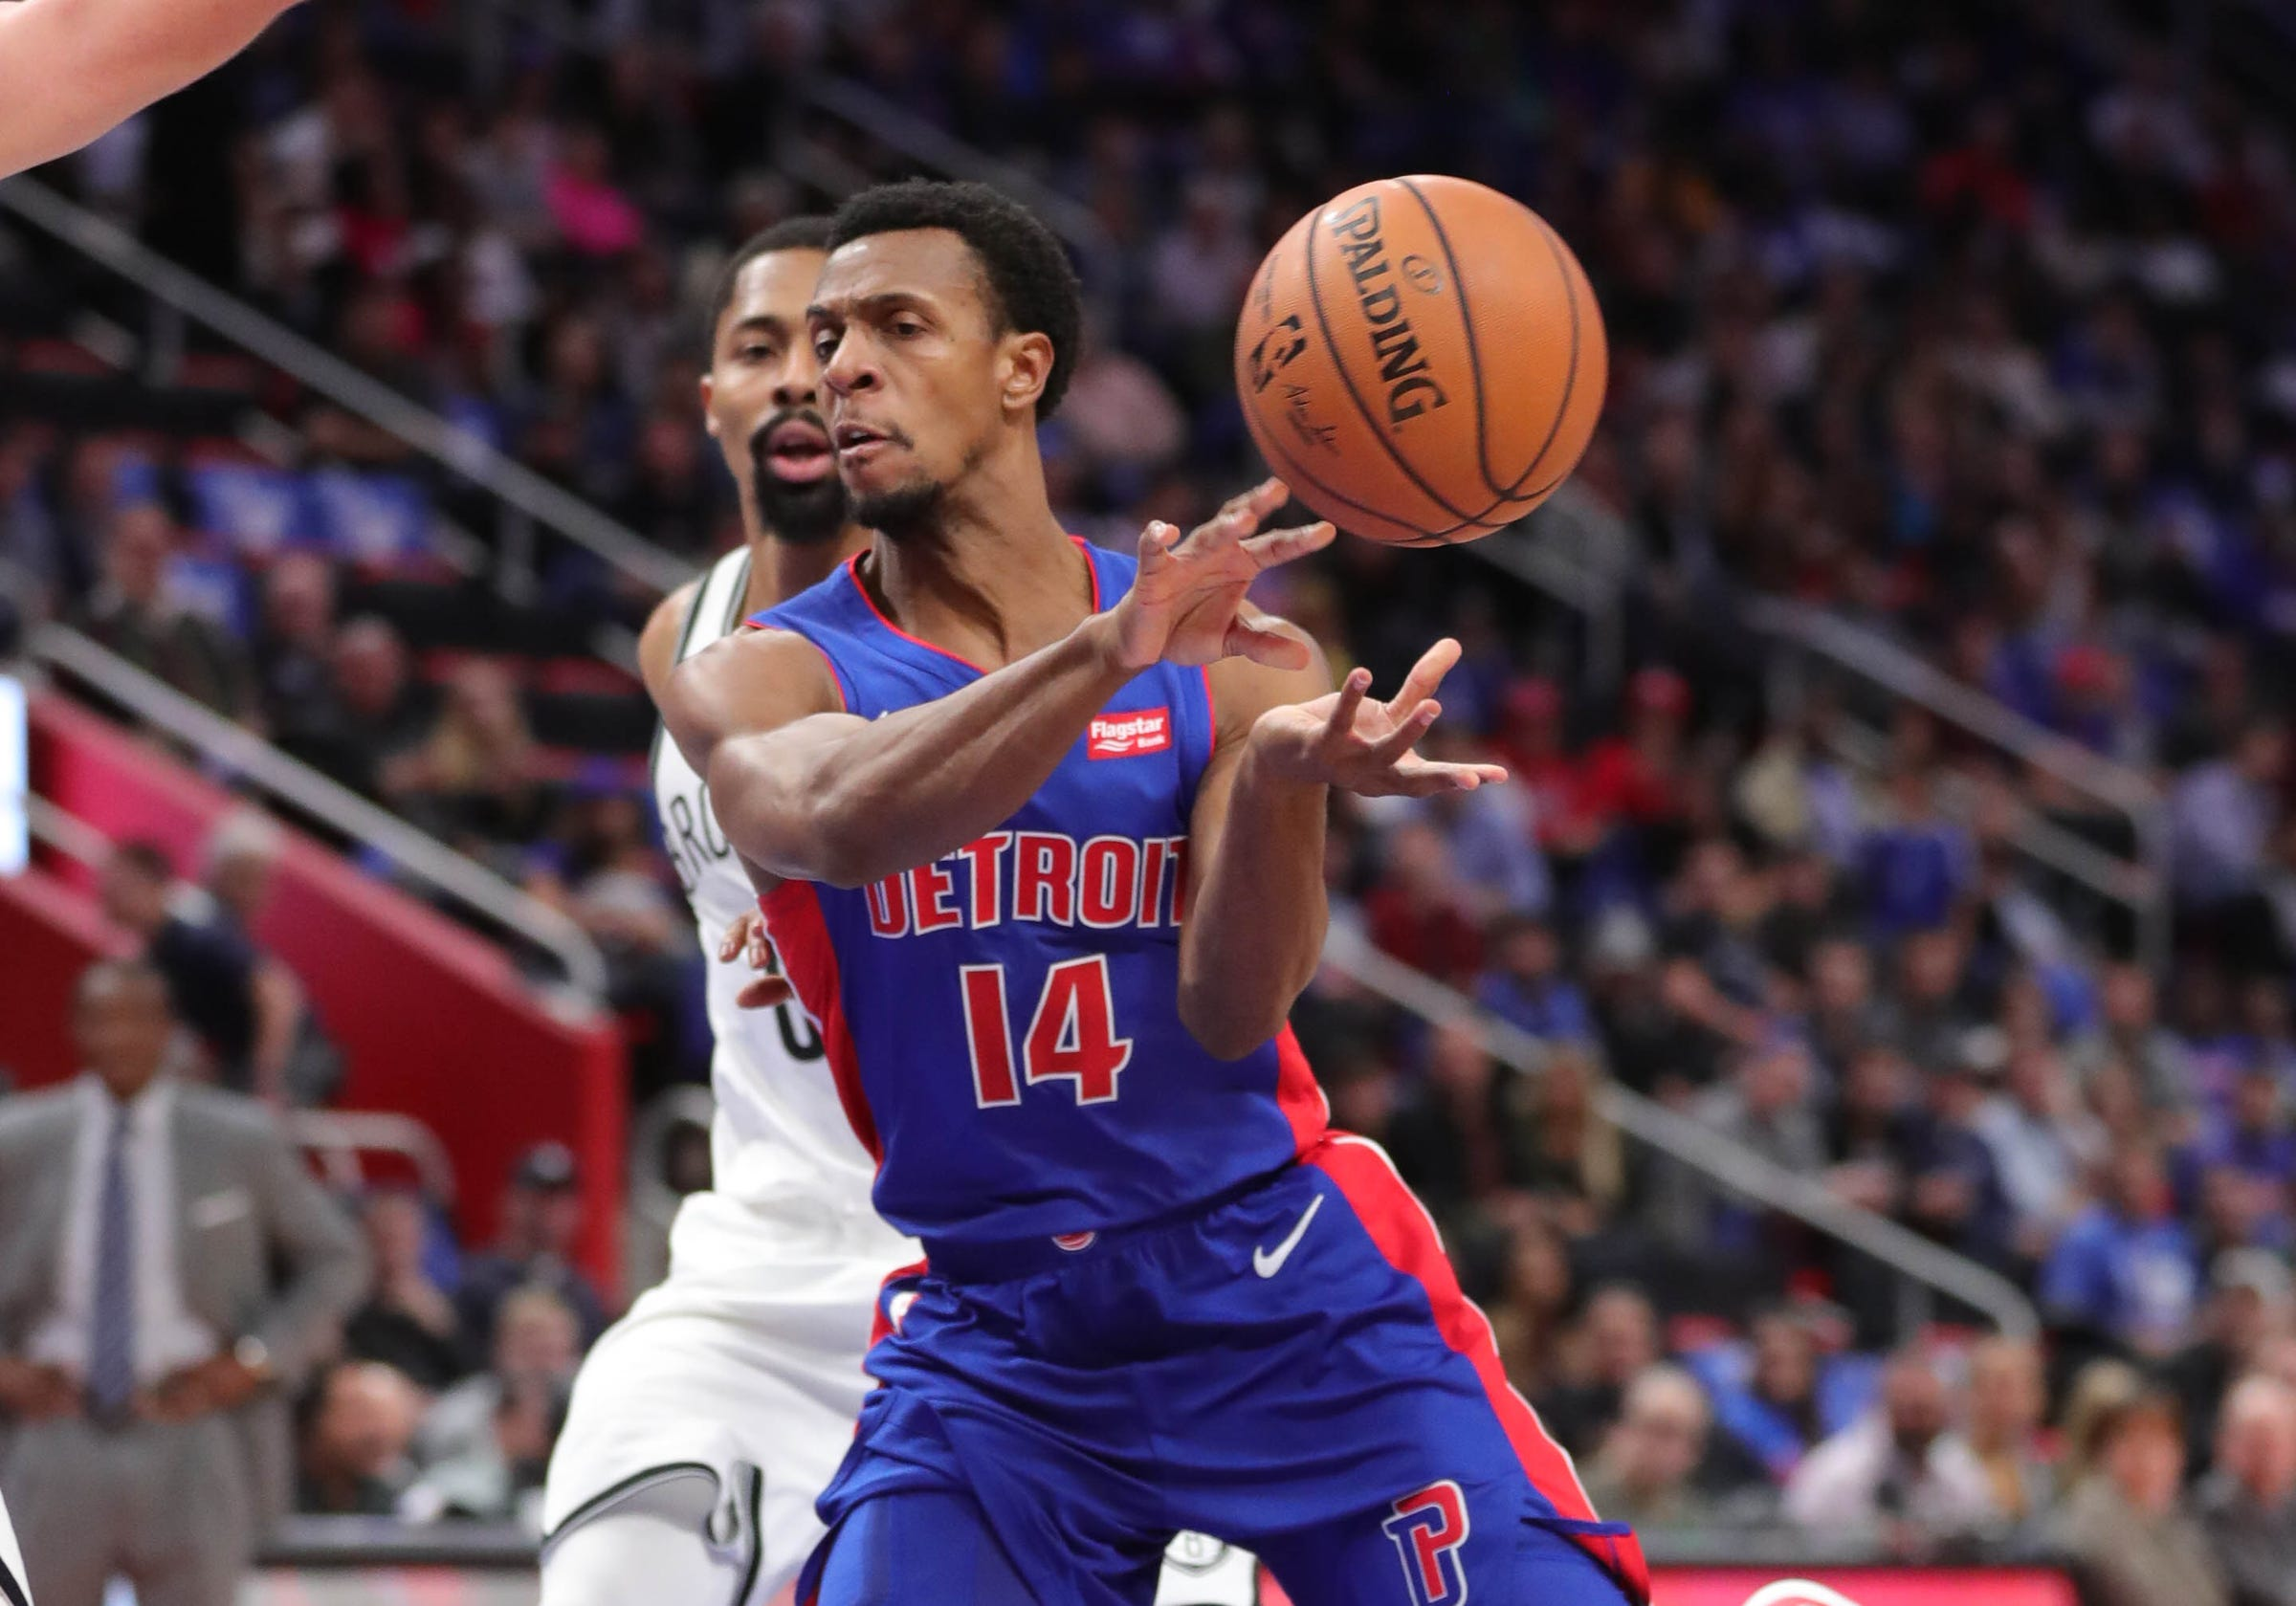 Pistons guard Ish Smith passes against Nets guard Spencer Dinwiddie during the third period of the Pistons' 103-100 win on Wednesday, Oct. 17, 2018, at Little Caesars Arena.